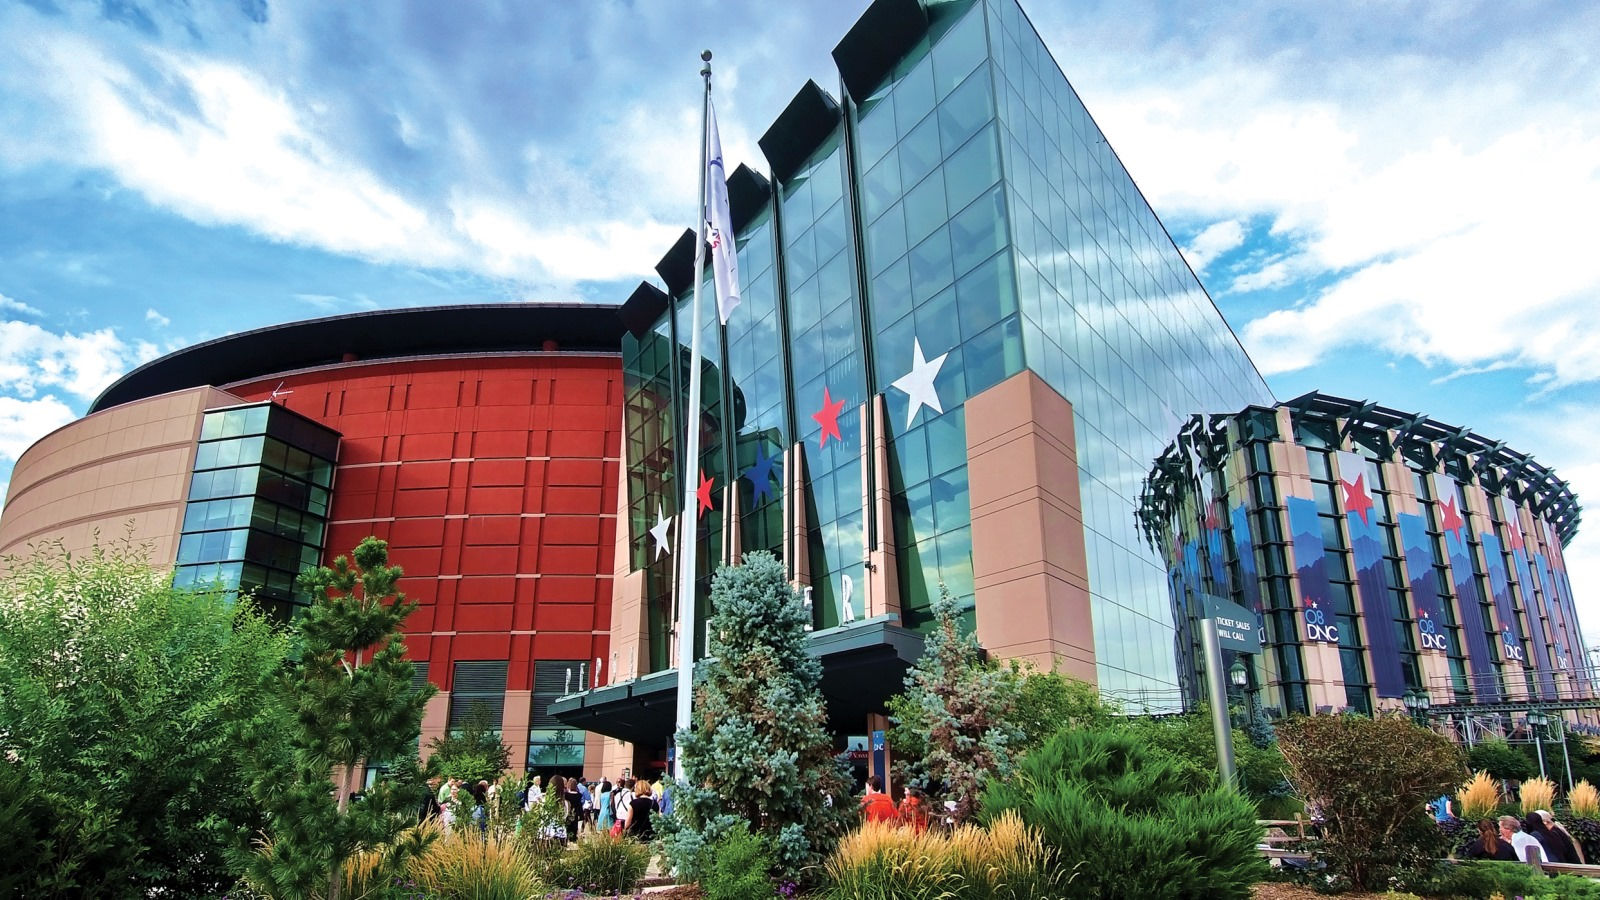 Downtown Denver Attractions - Pepsi Center